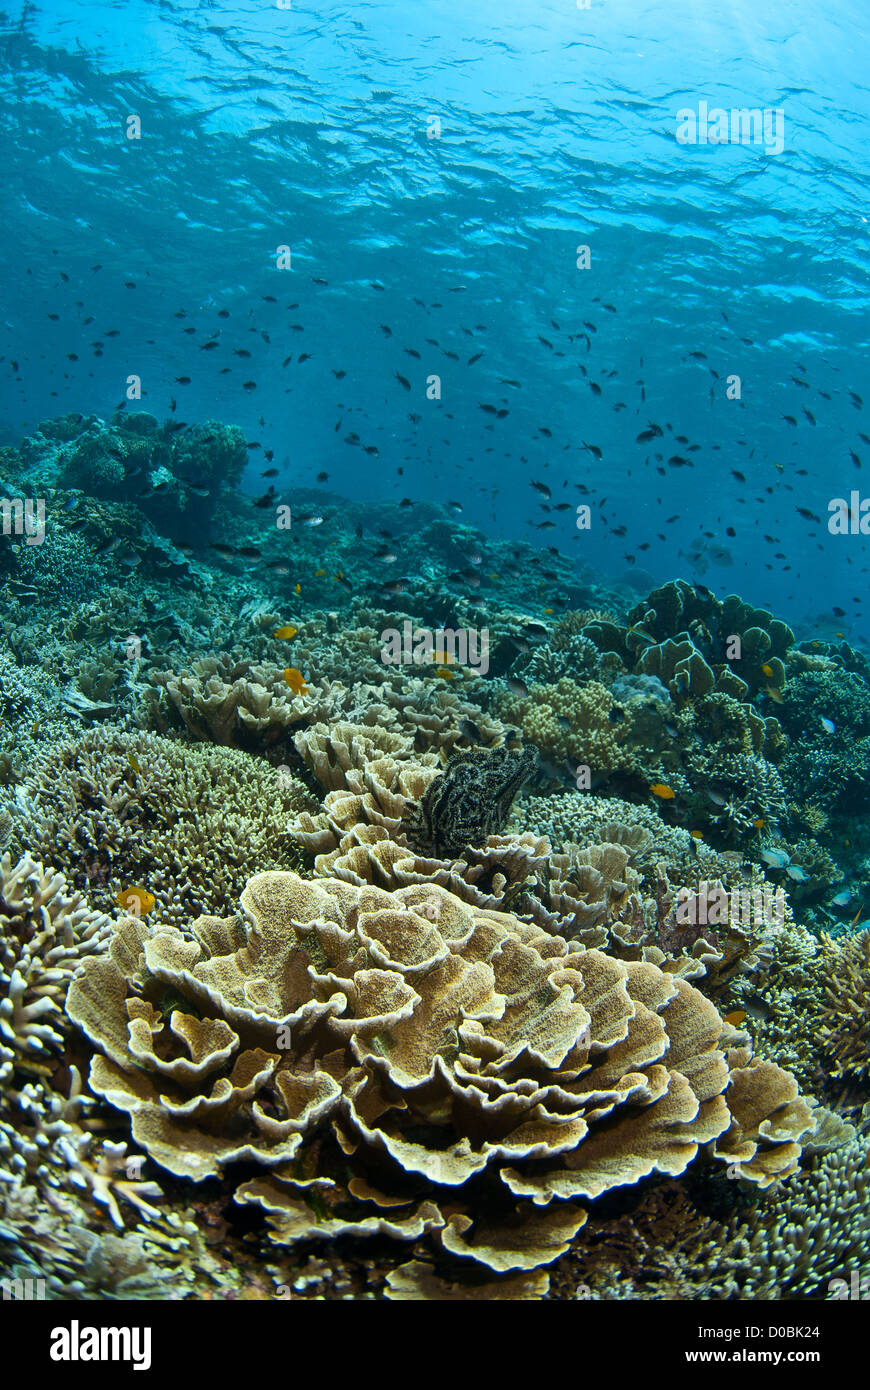 The beautiful coral reef of Menjangan island in the North West of Bali, Indonesia - Stock Image